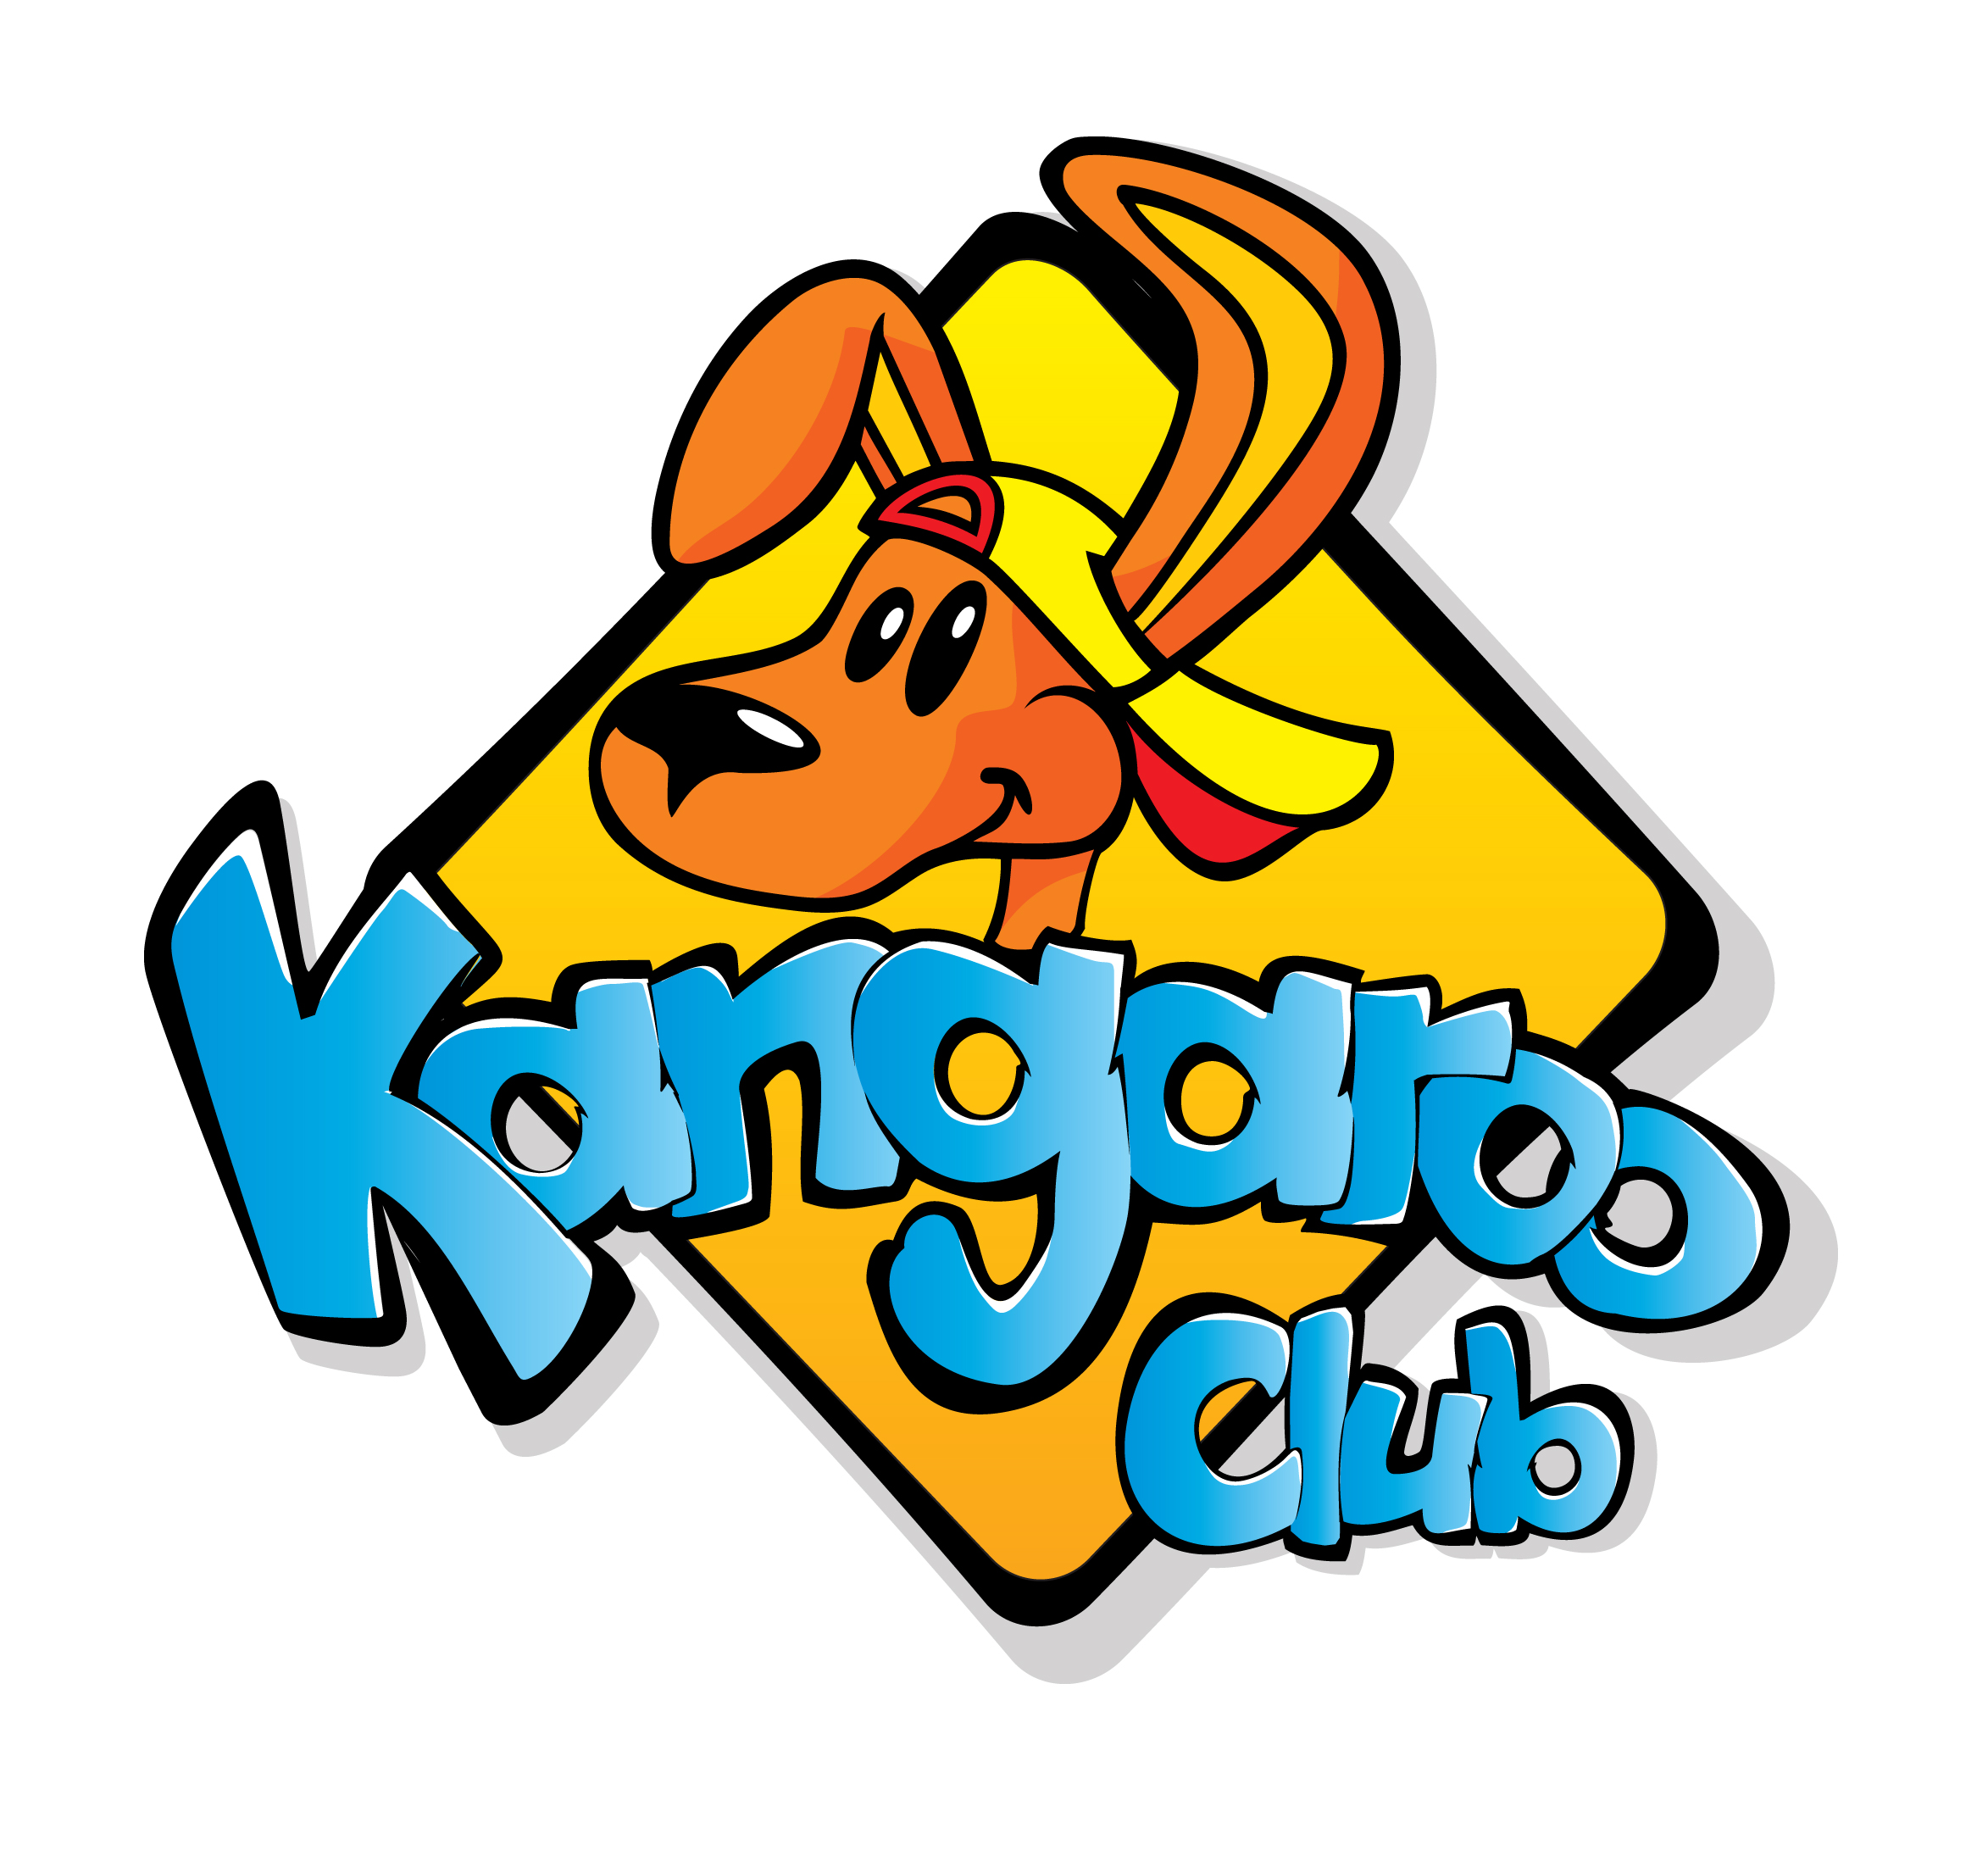 Kangaroo Club Logo, Dona Filipa Hotel in Algarve